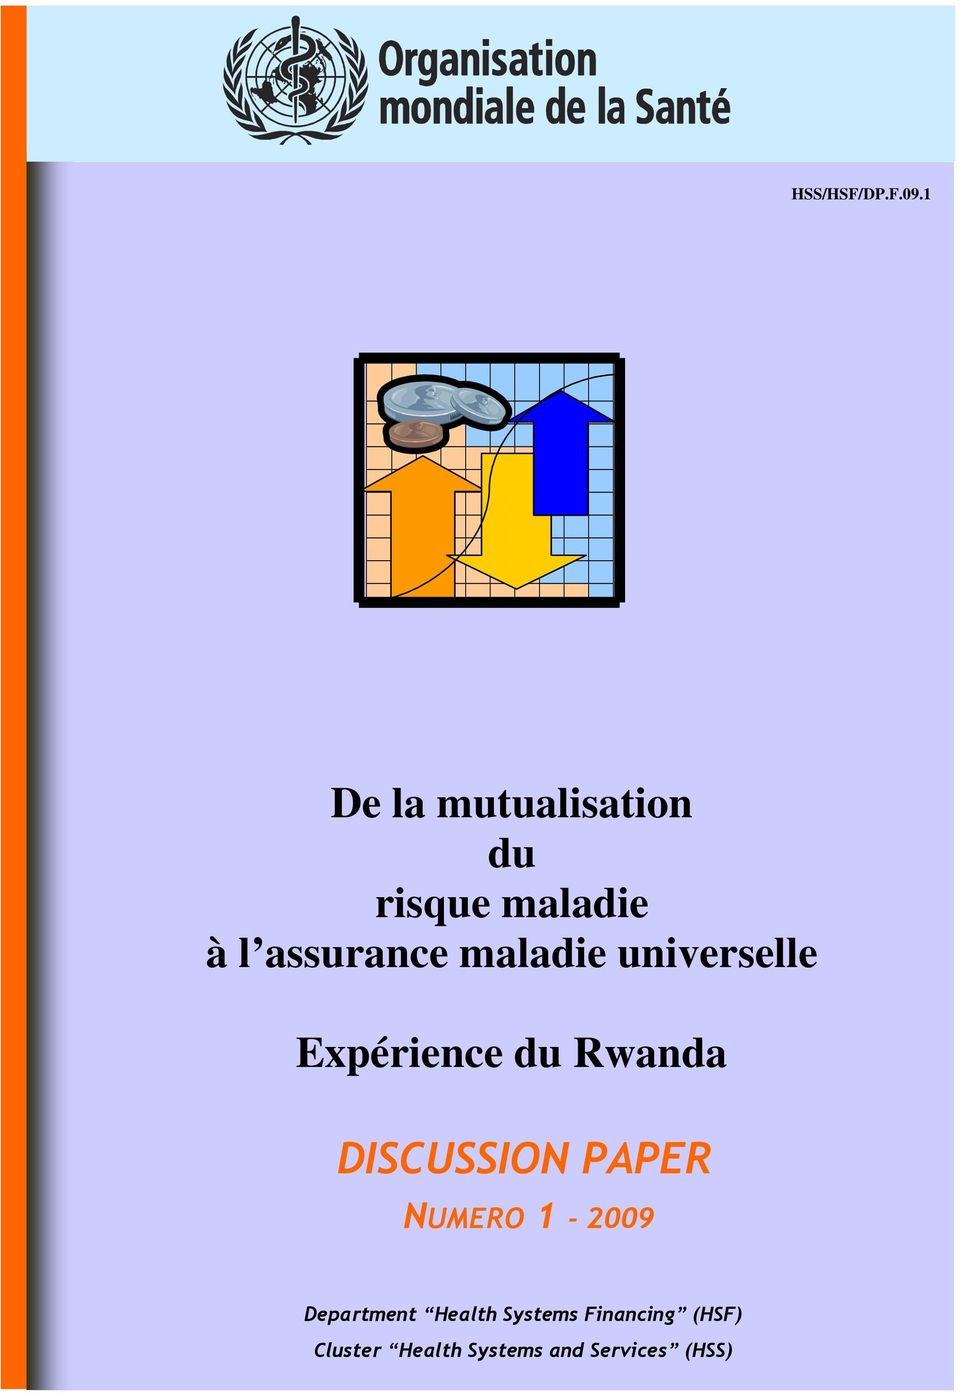 maladie universelle Expérience du Rwanda DISCUSSION